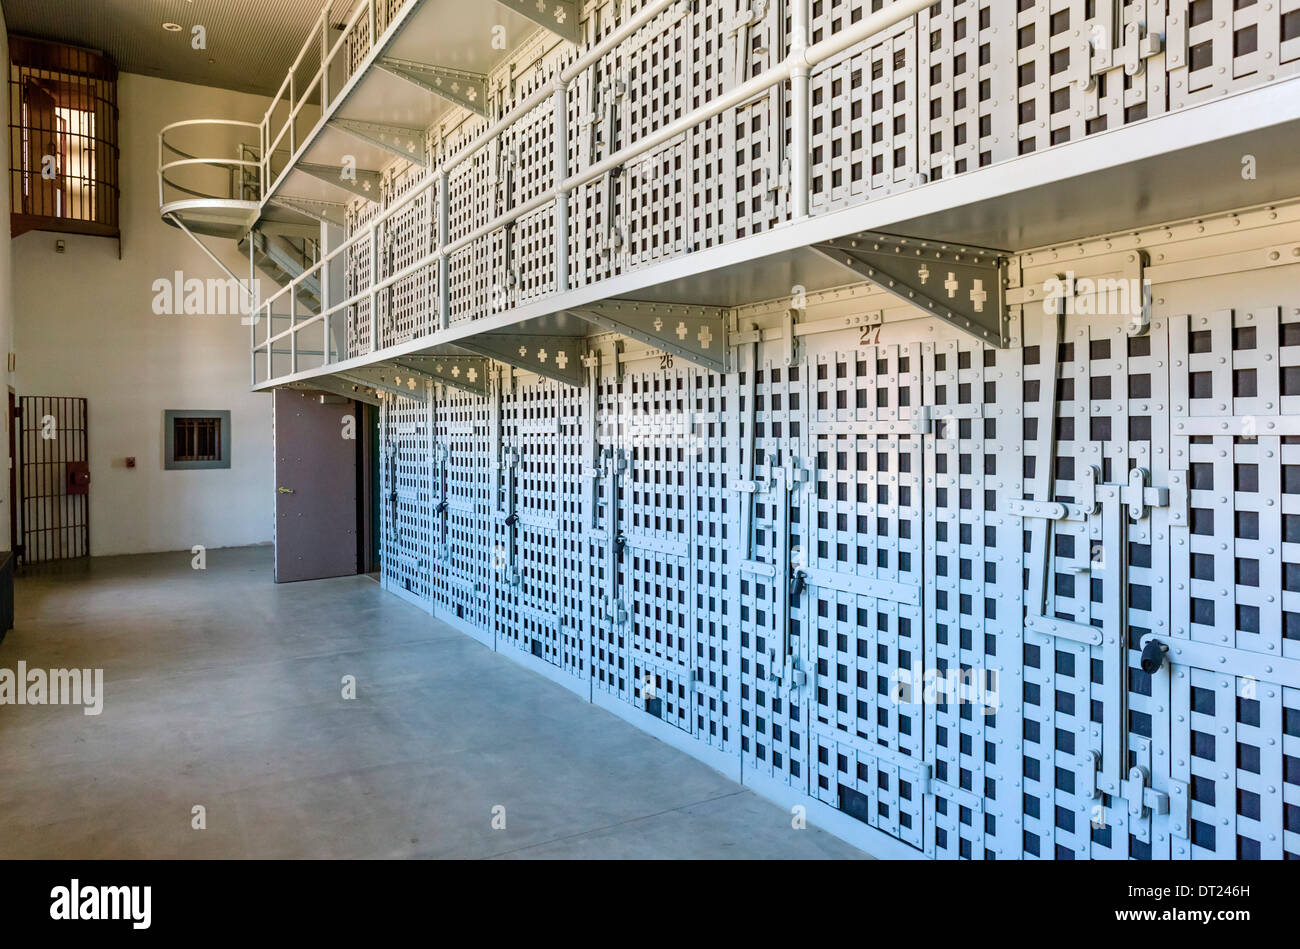 Cells in the Wyoming Territorial Prison Museum, where the outlaw Butch Cassidy was once imprisoned, Laramie, Wyoming, USA - Stock Image